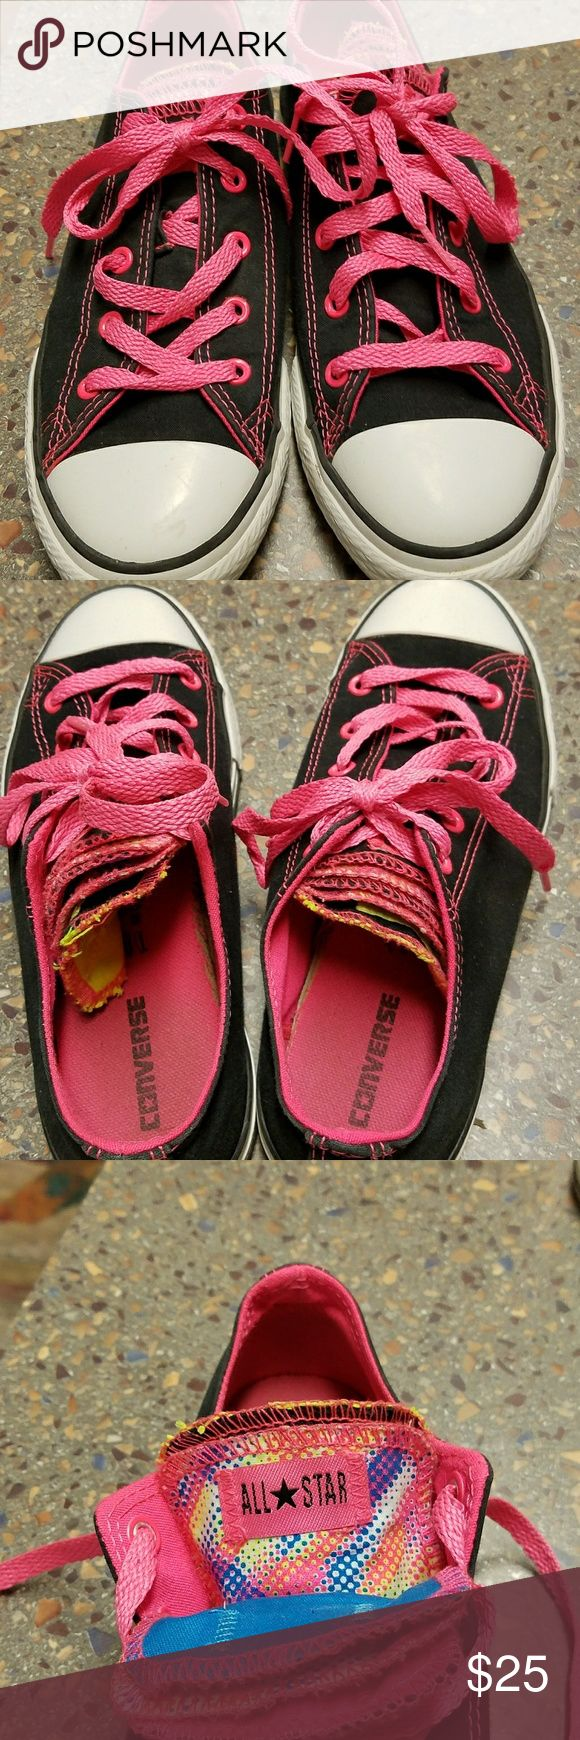 Ladies Converse Black with hot pink trim. Multiple tongues with different designs. Gently used. Look great. Converse Shoes Sneakers